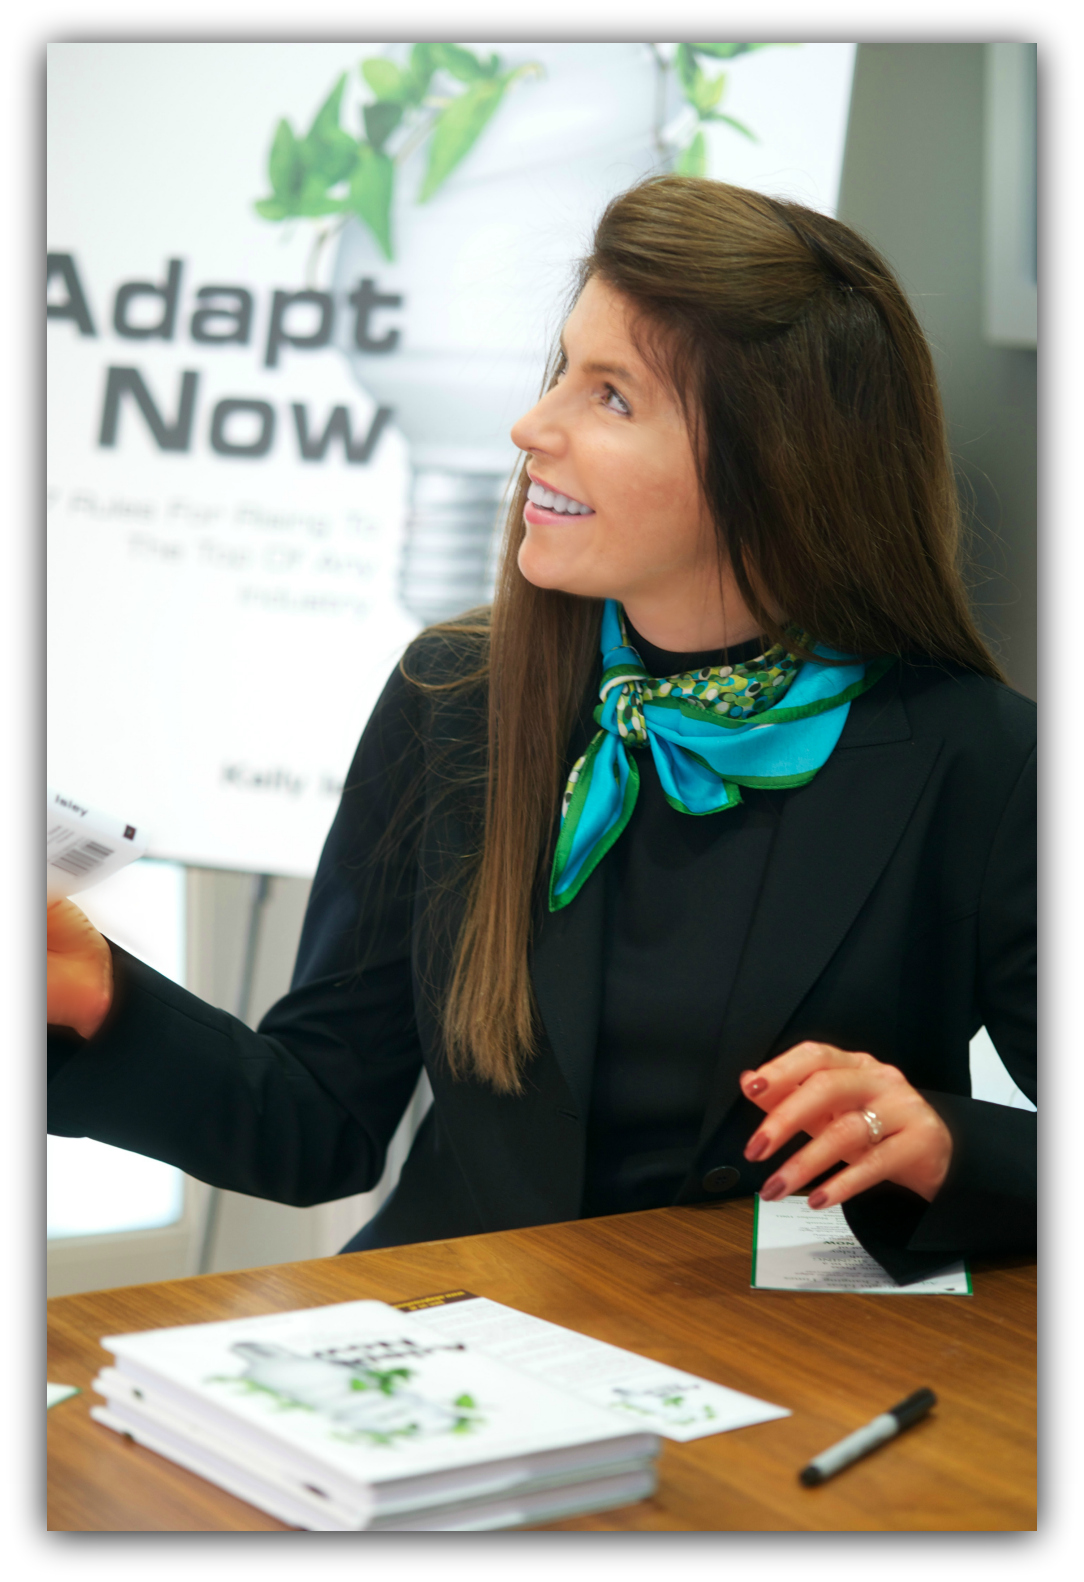 Adapt Now book signing with author Kelly Isley